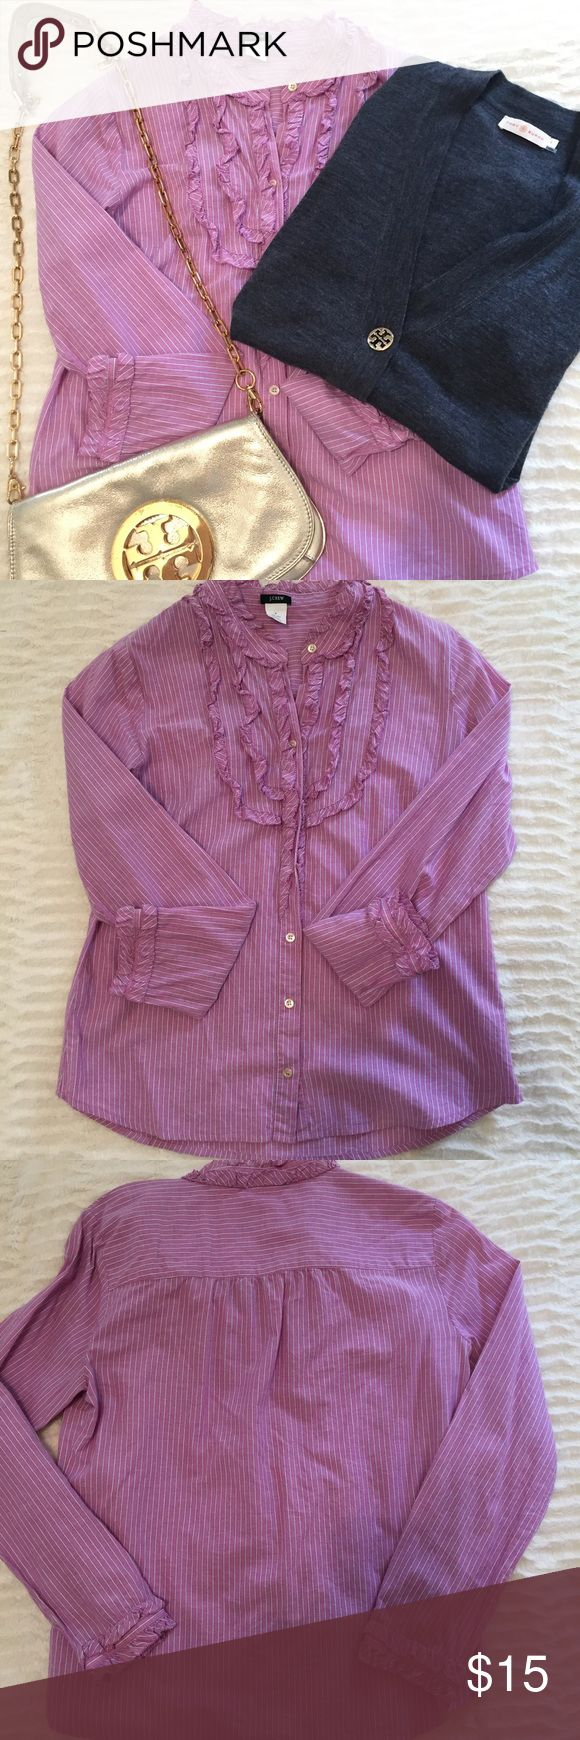 J Crew Top J Crew button down ruffle striped shirt- pink- cute under v neck sweater or vest- good used condition J. Crew Tops Button Down Shirts